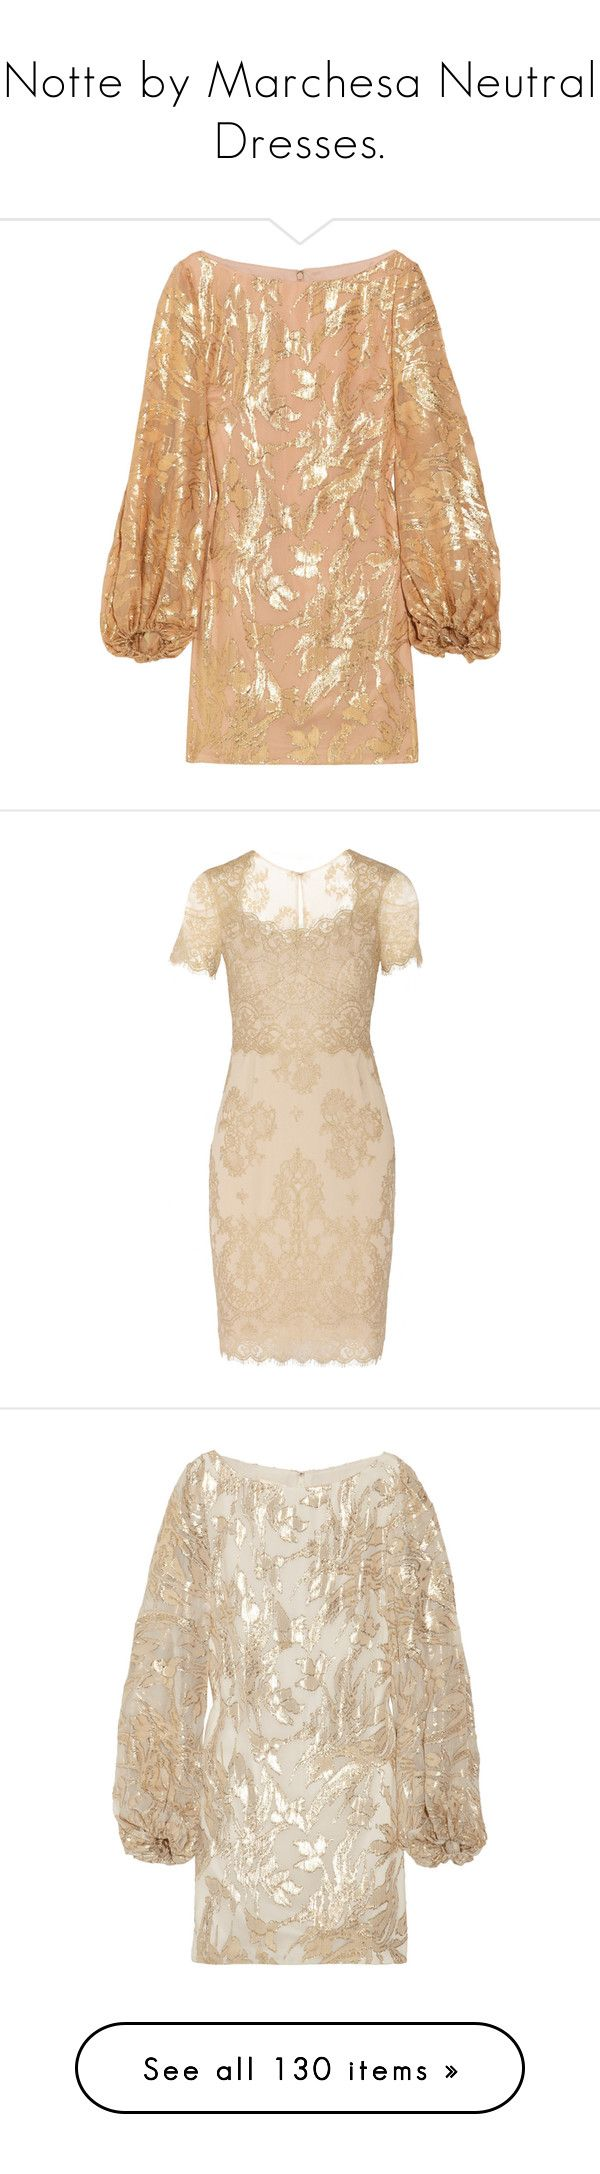 """Notte by Marchesa Neutral Dresses."" by that-drumming-noise ❤ liked on Polyvore featuring dresses, tops, vestidos, gold, women, boat neck cocktail dress, special occasion dresses, floral dresses, floral evening dresses and long evening dresses"